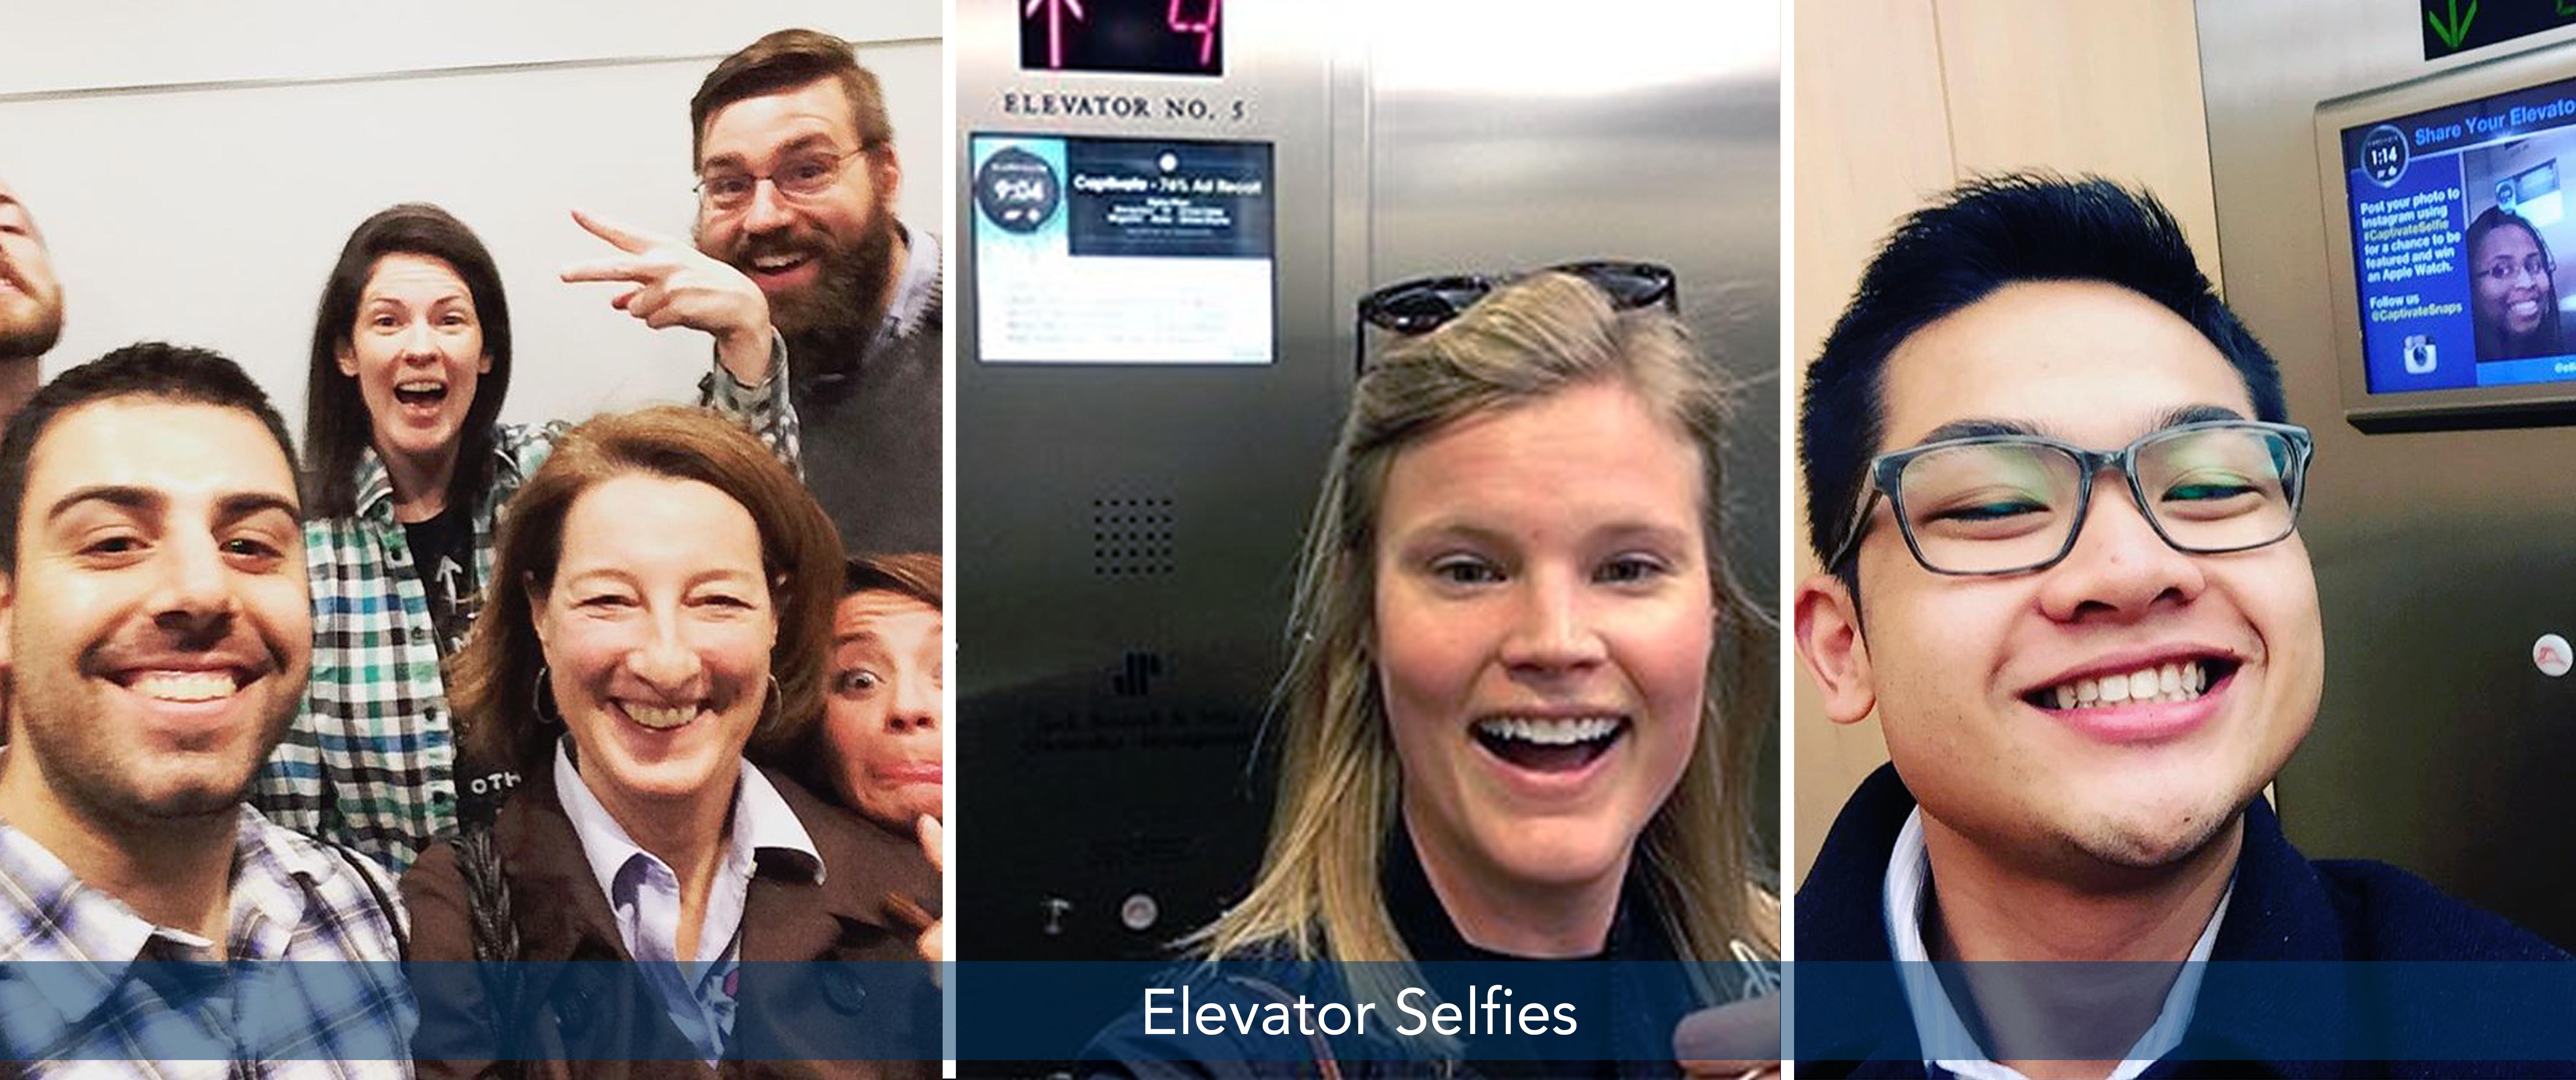 Share Viewer Photos On Captivate Elevator Screens